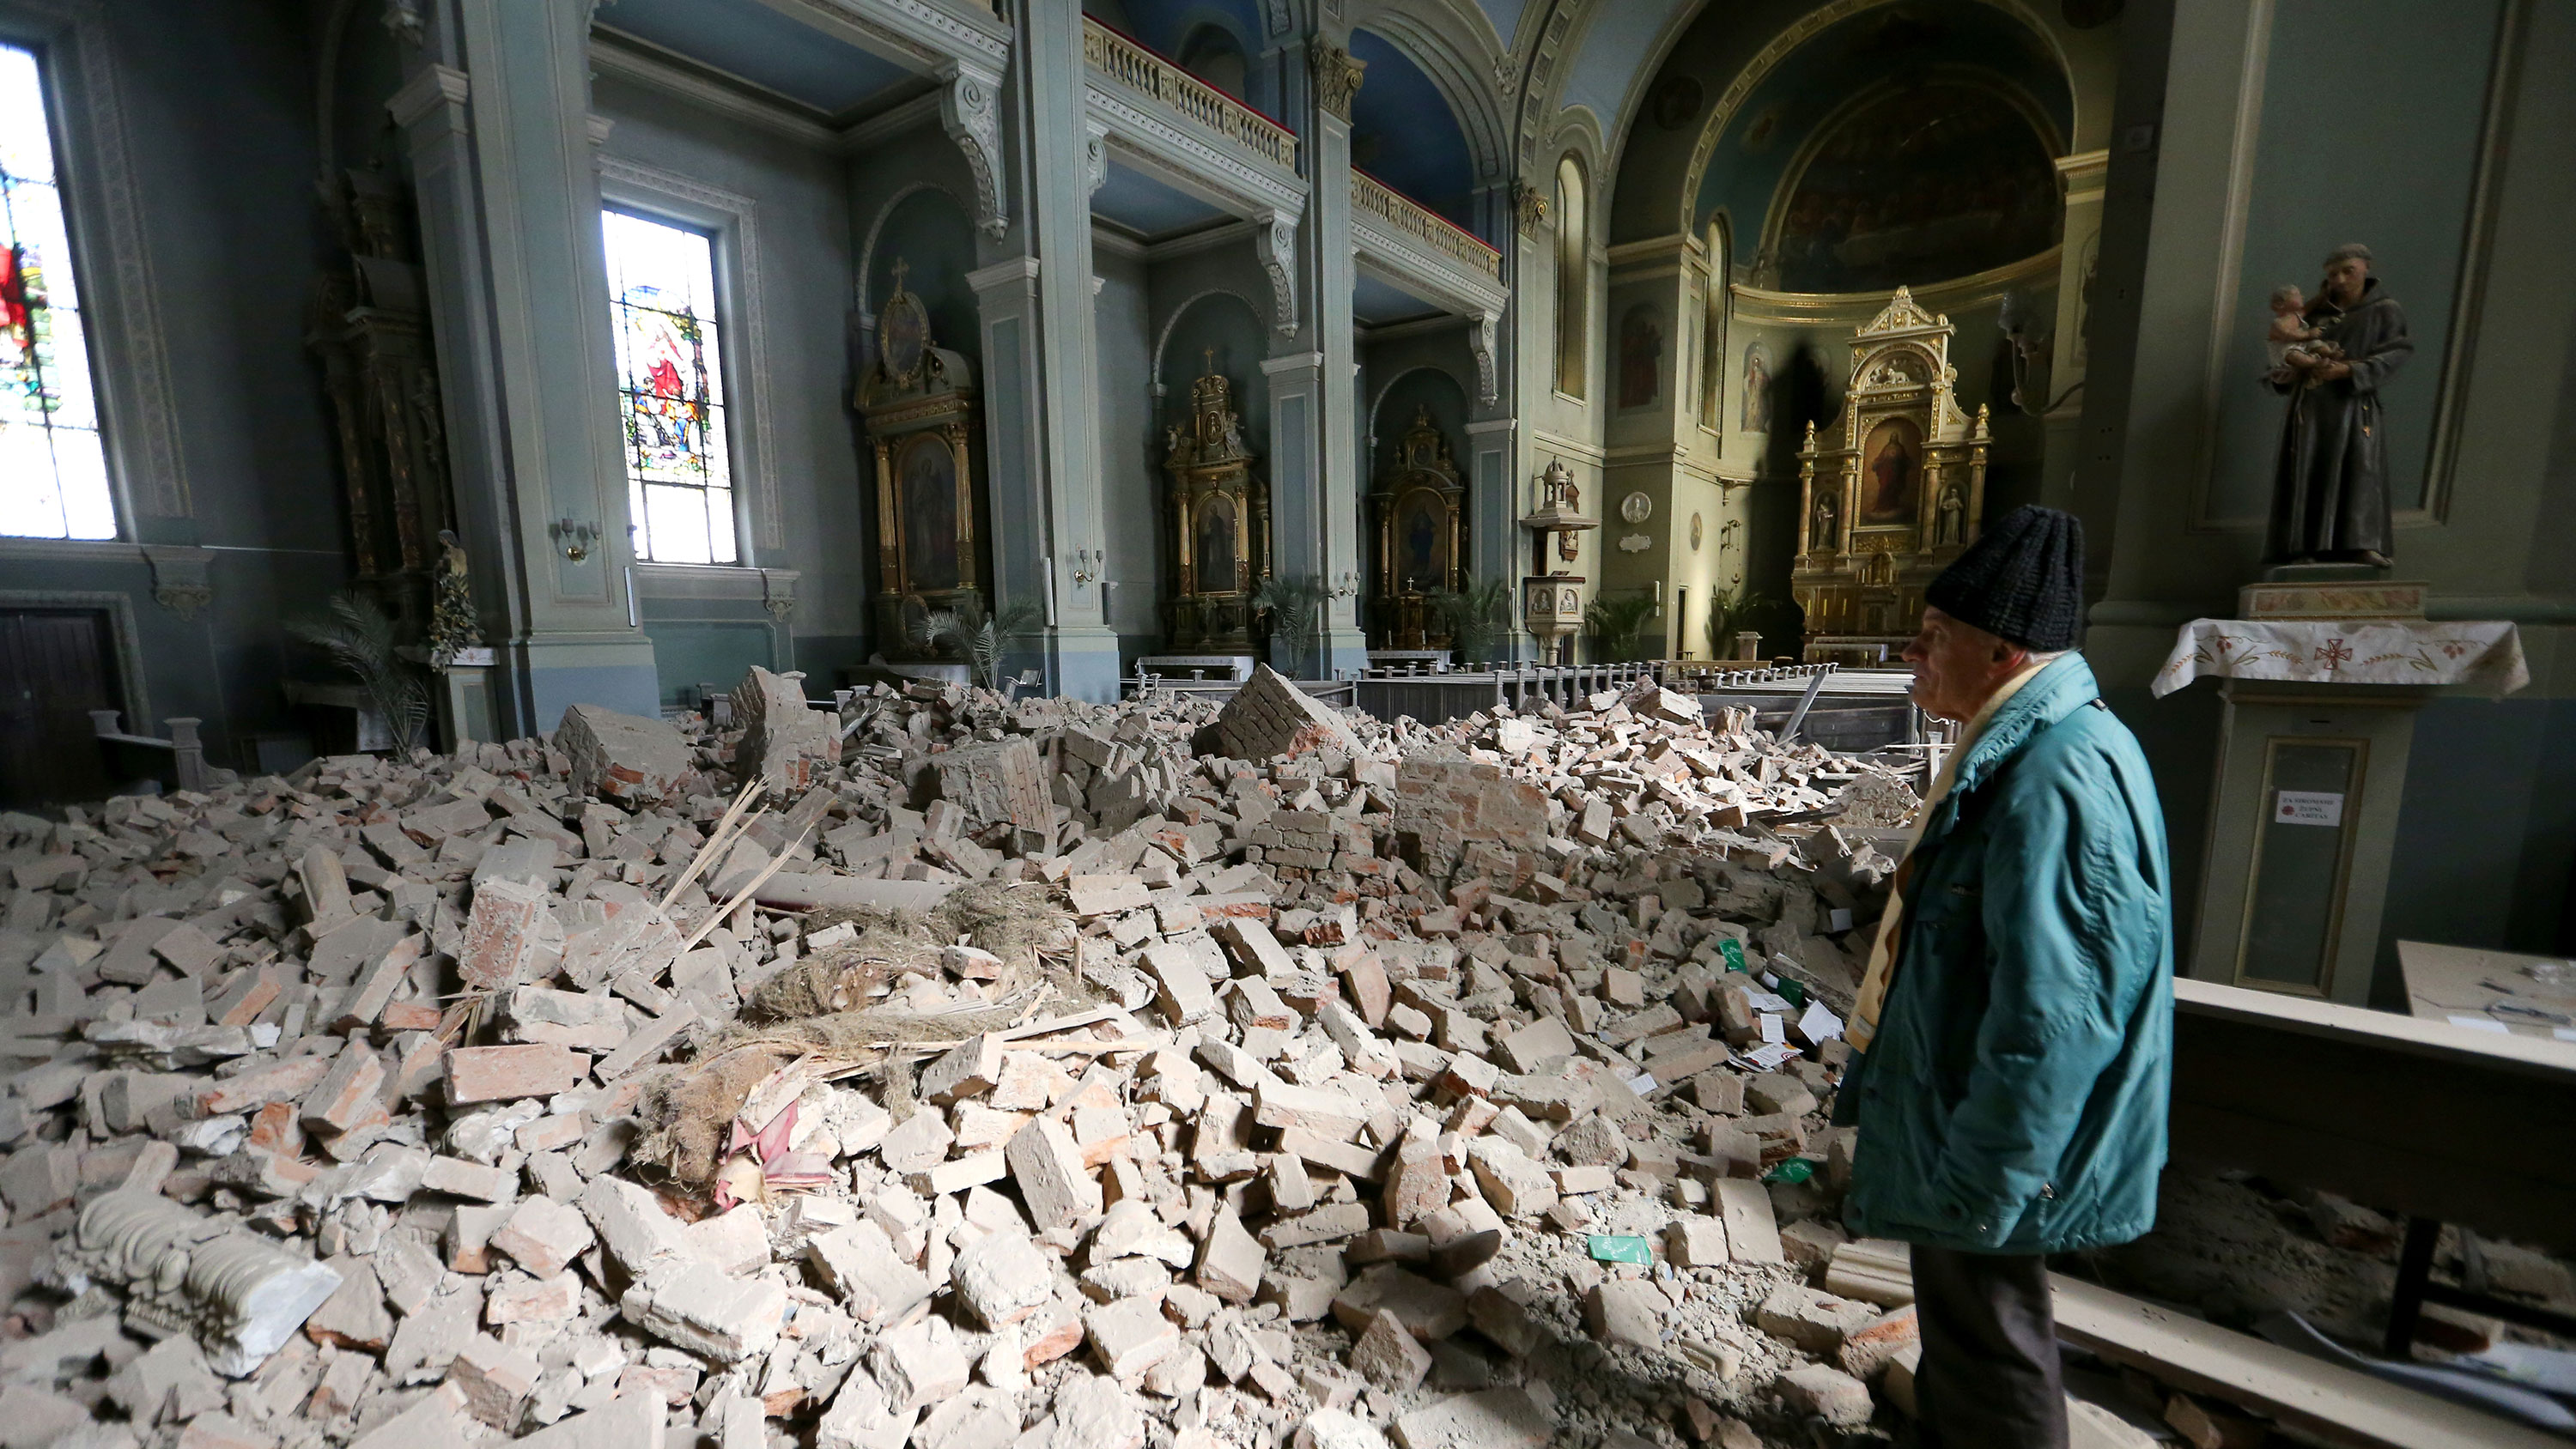 The photo shows the interior of a grand and old church that has undergone a significant amount of damage. The roof still stands but the floor of the church is filled with rubble.